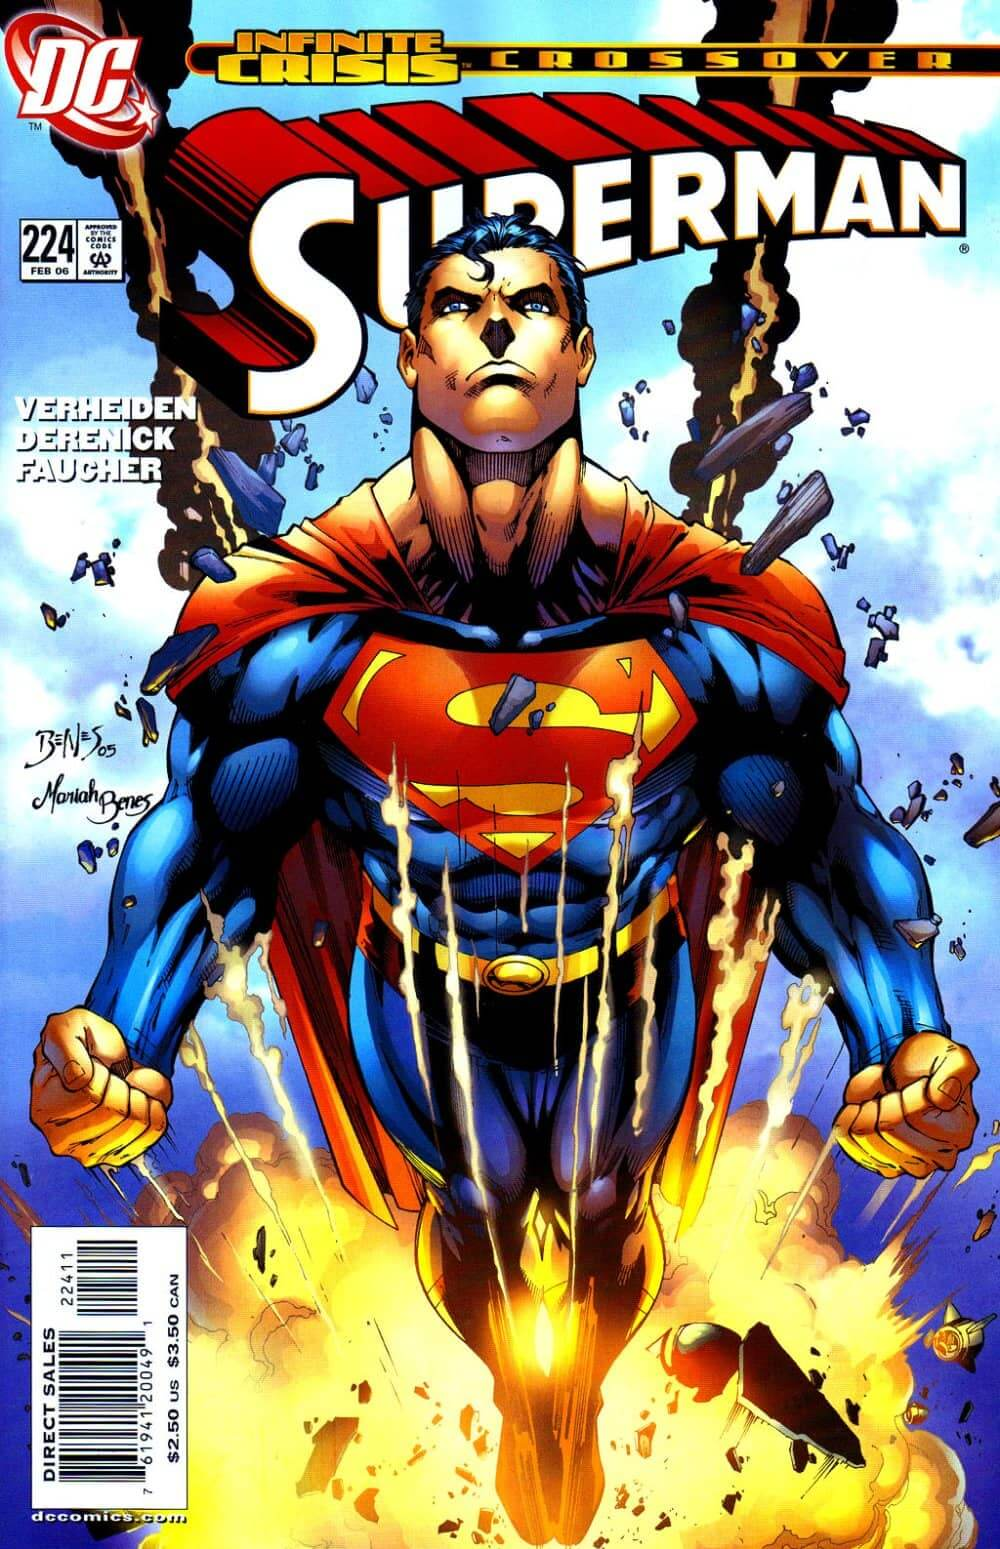 Superman 224 Infinite Crisis cover